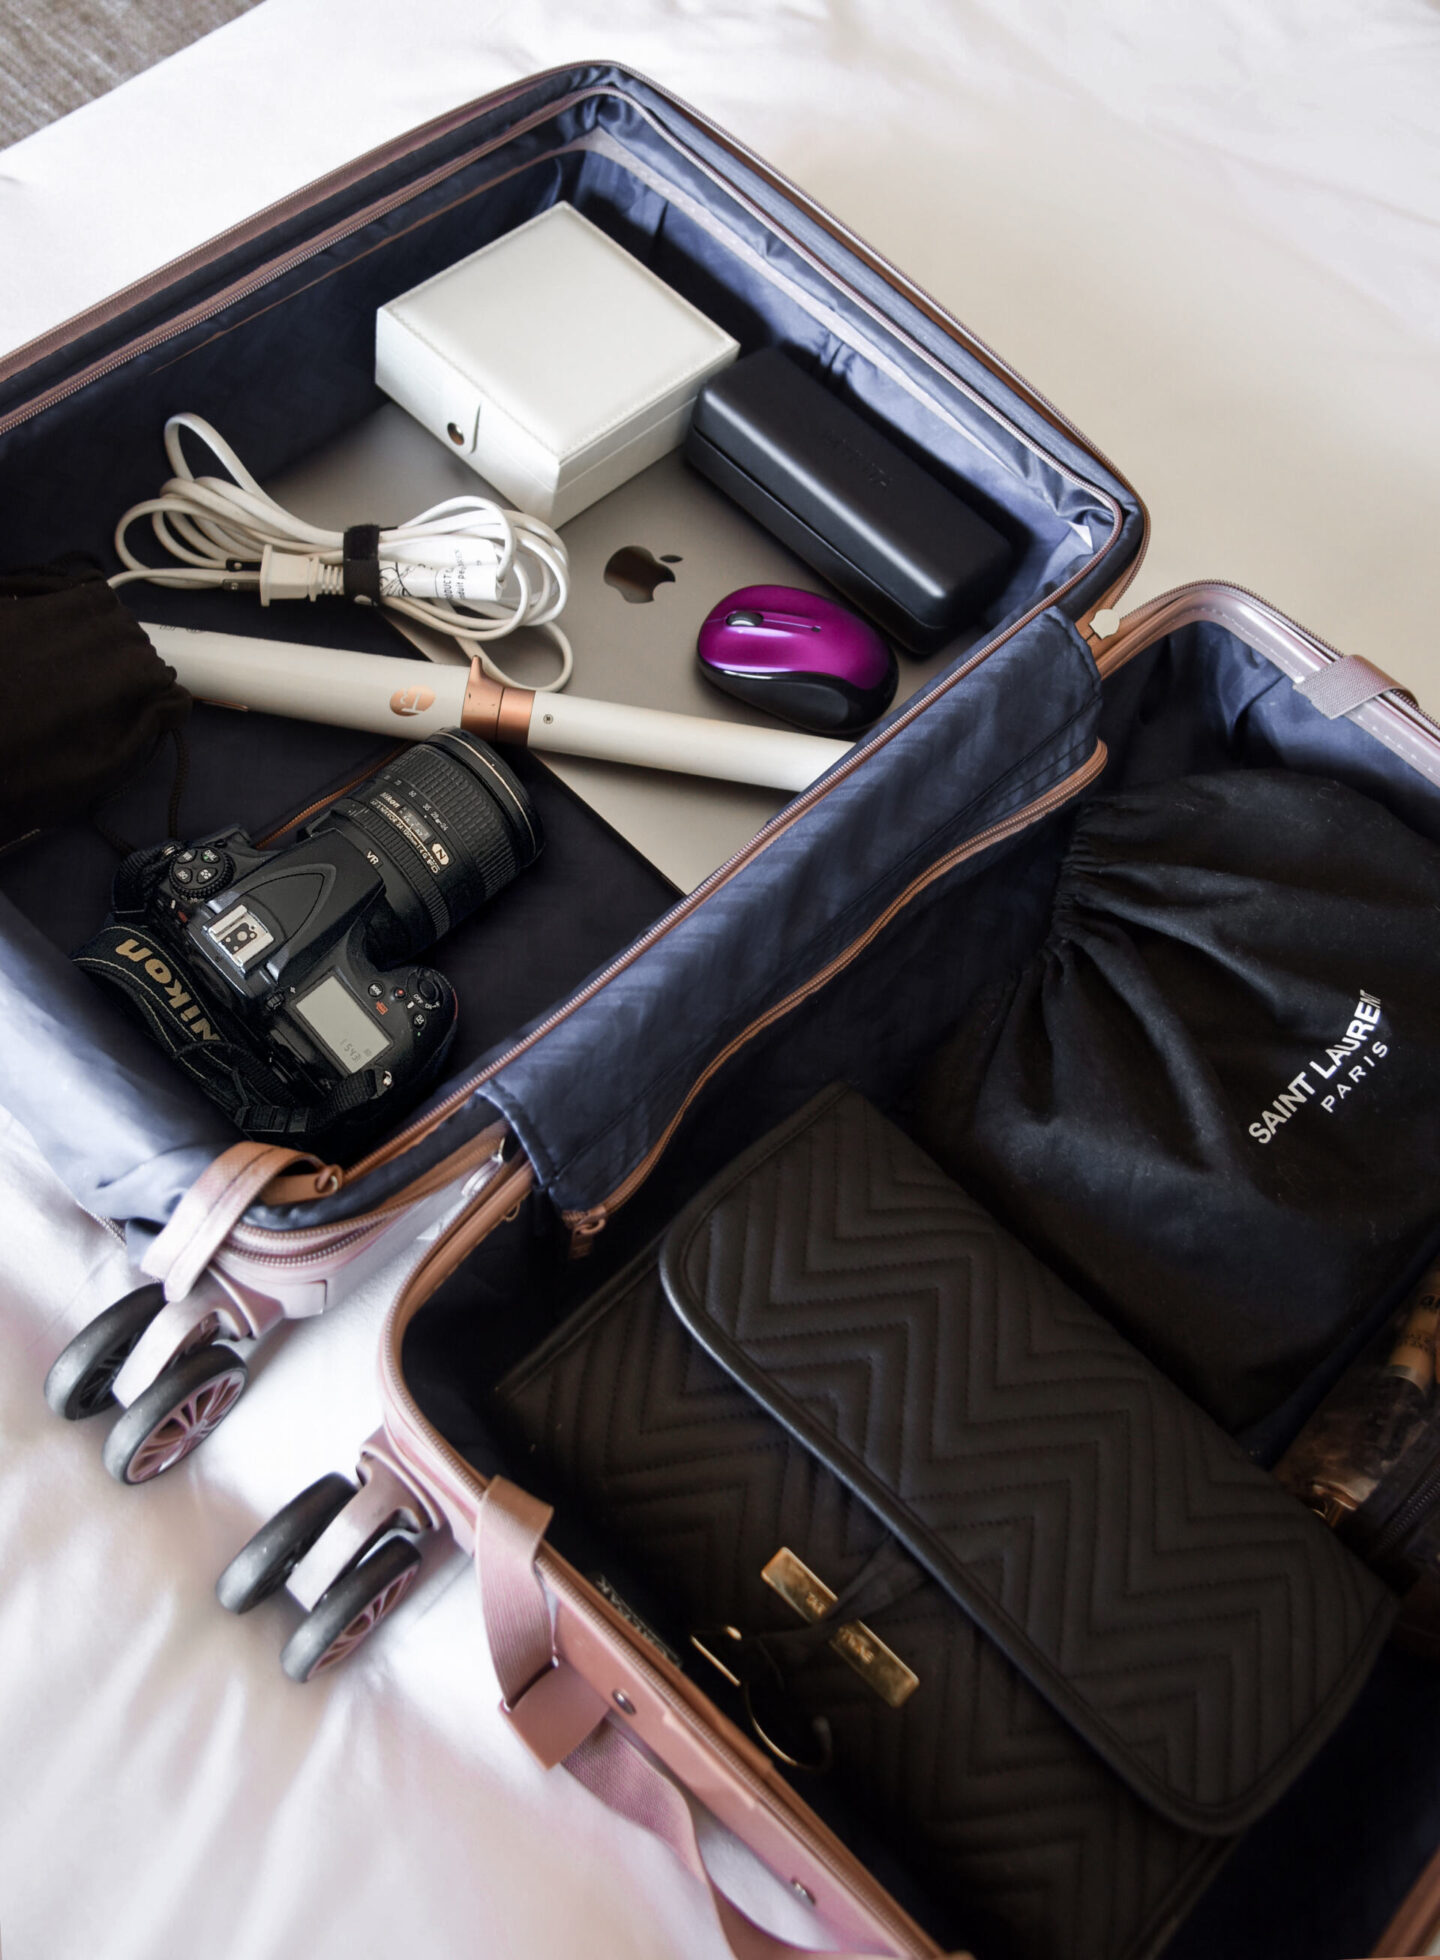 suitcase, luggage, carry on, valuables, travel